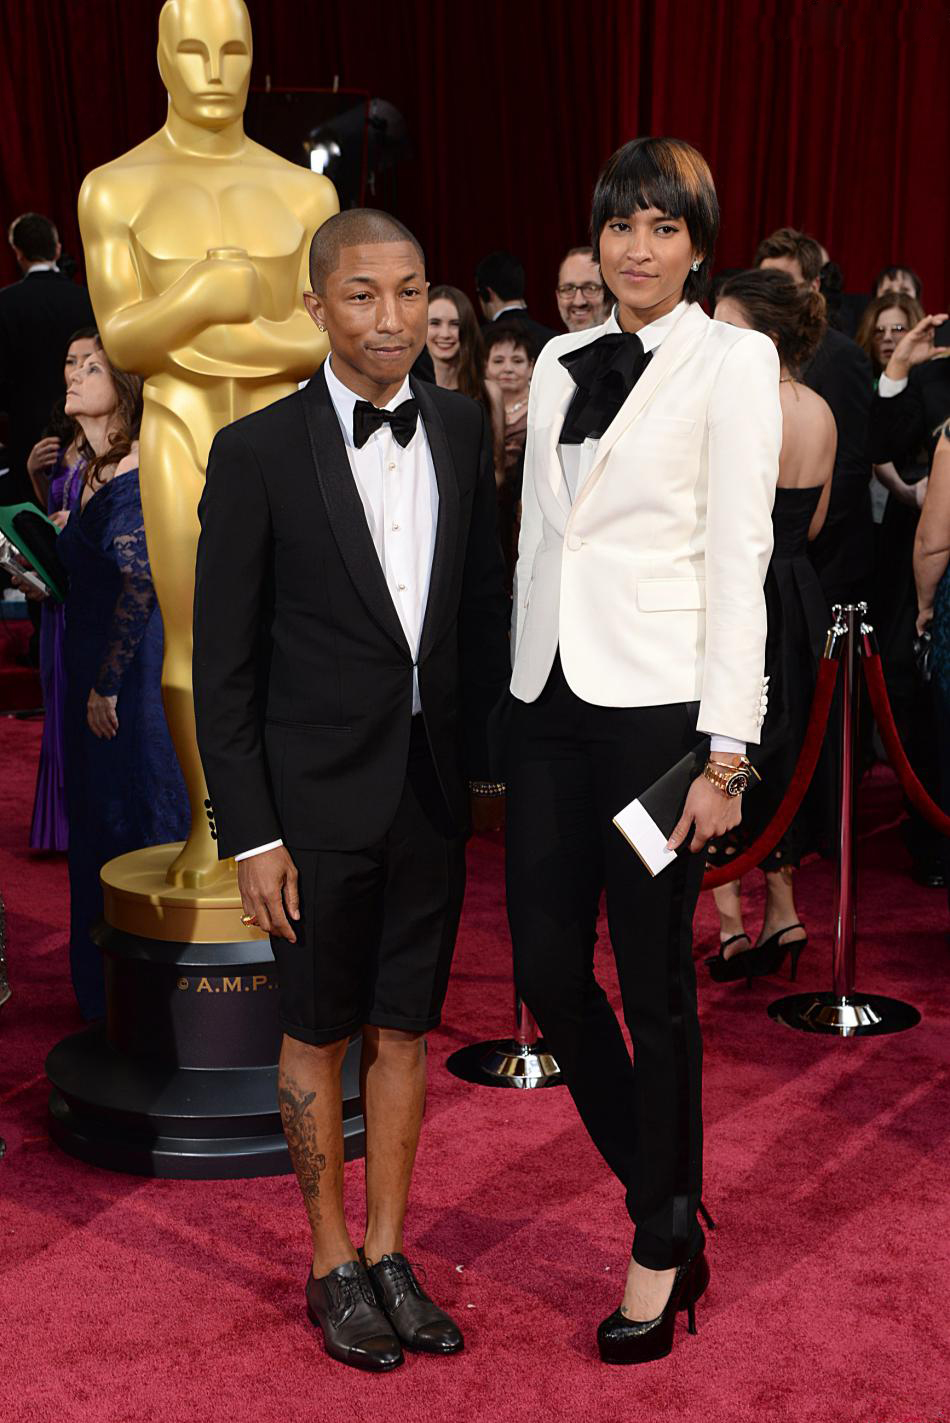 Pharell-Williams-Oscars 2014